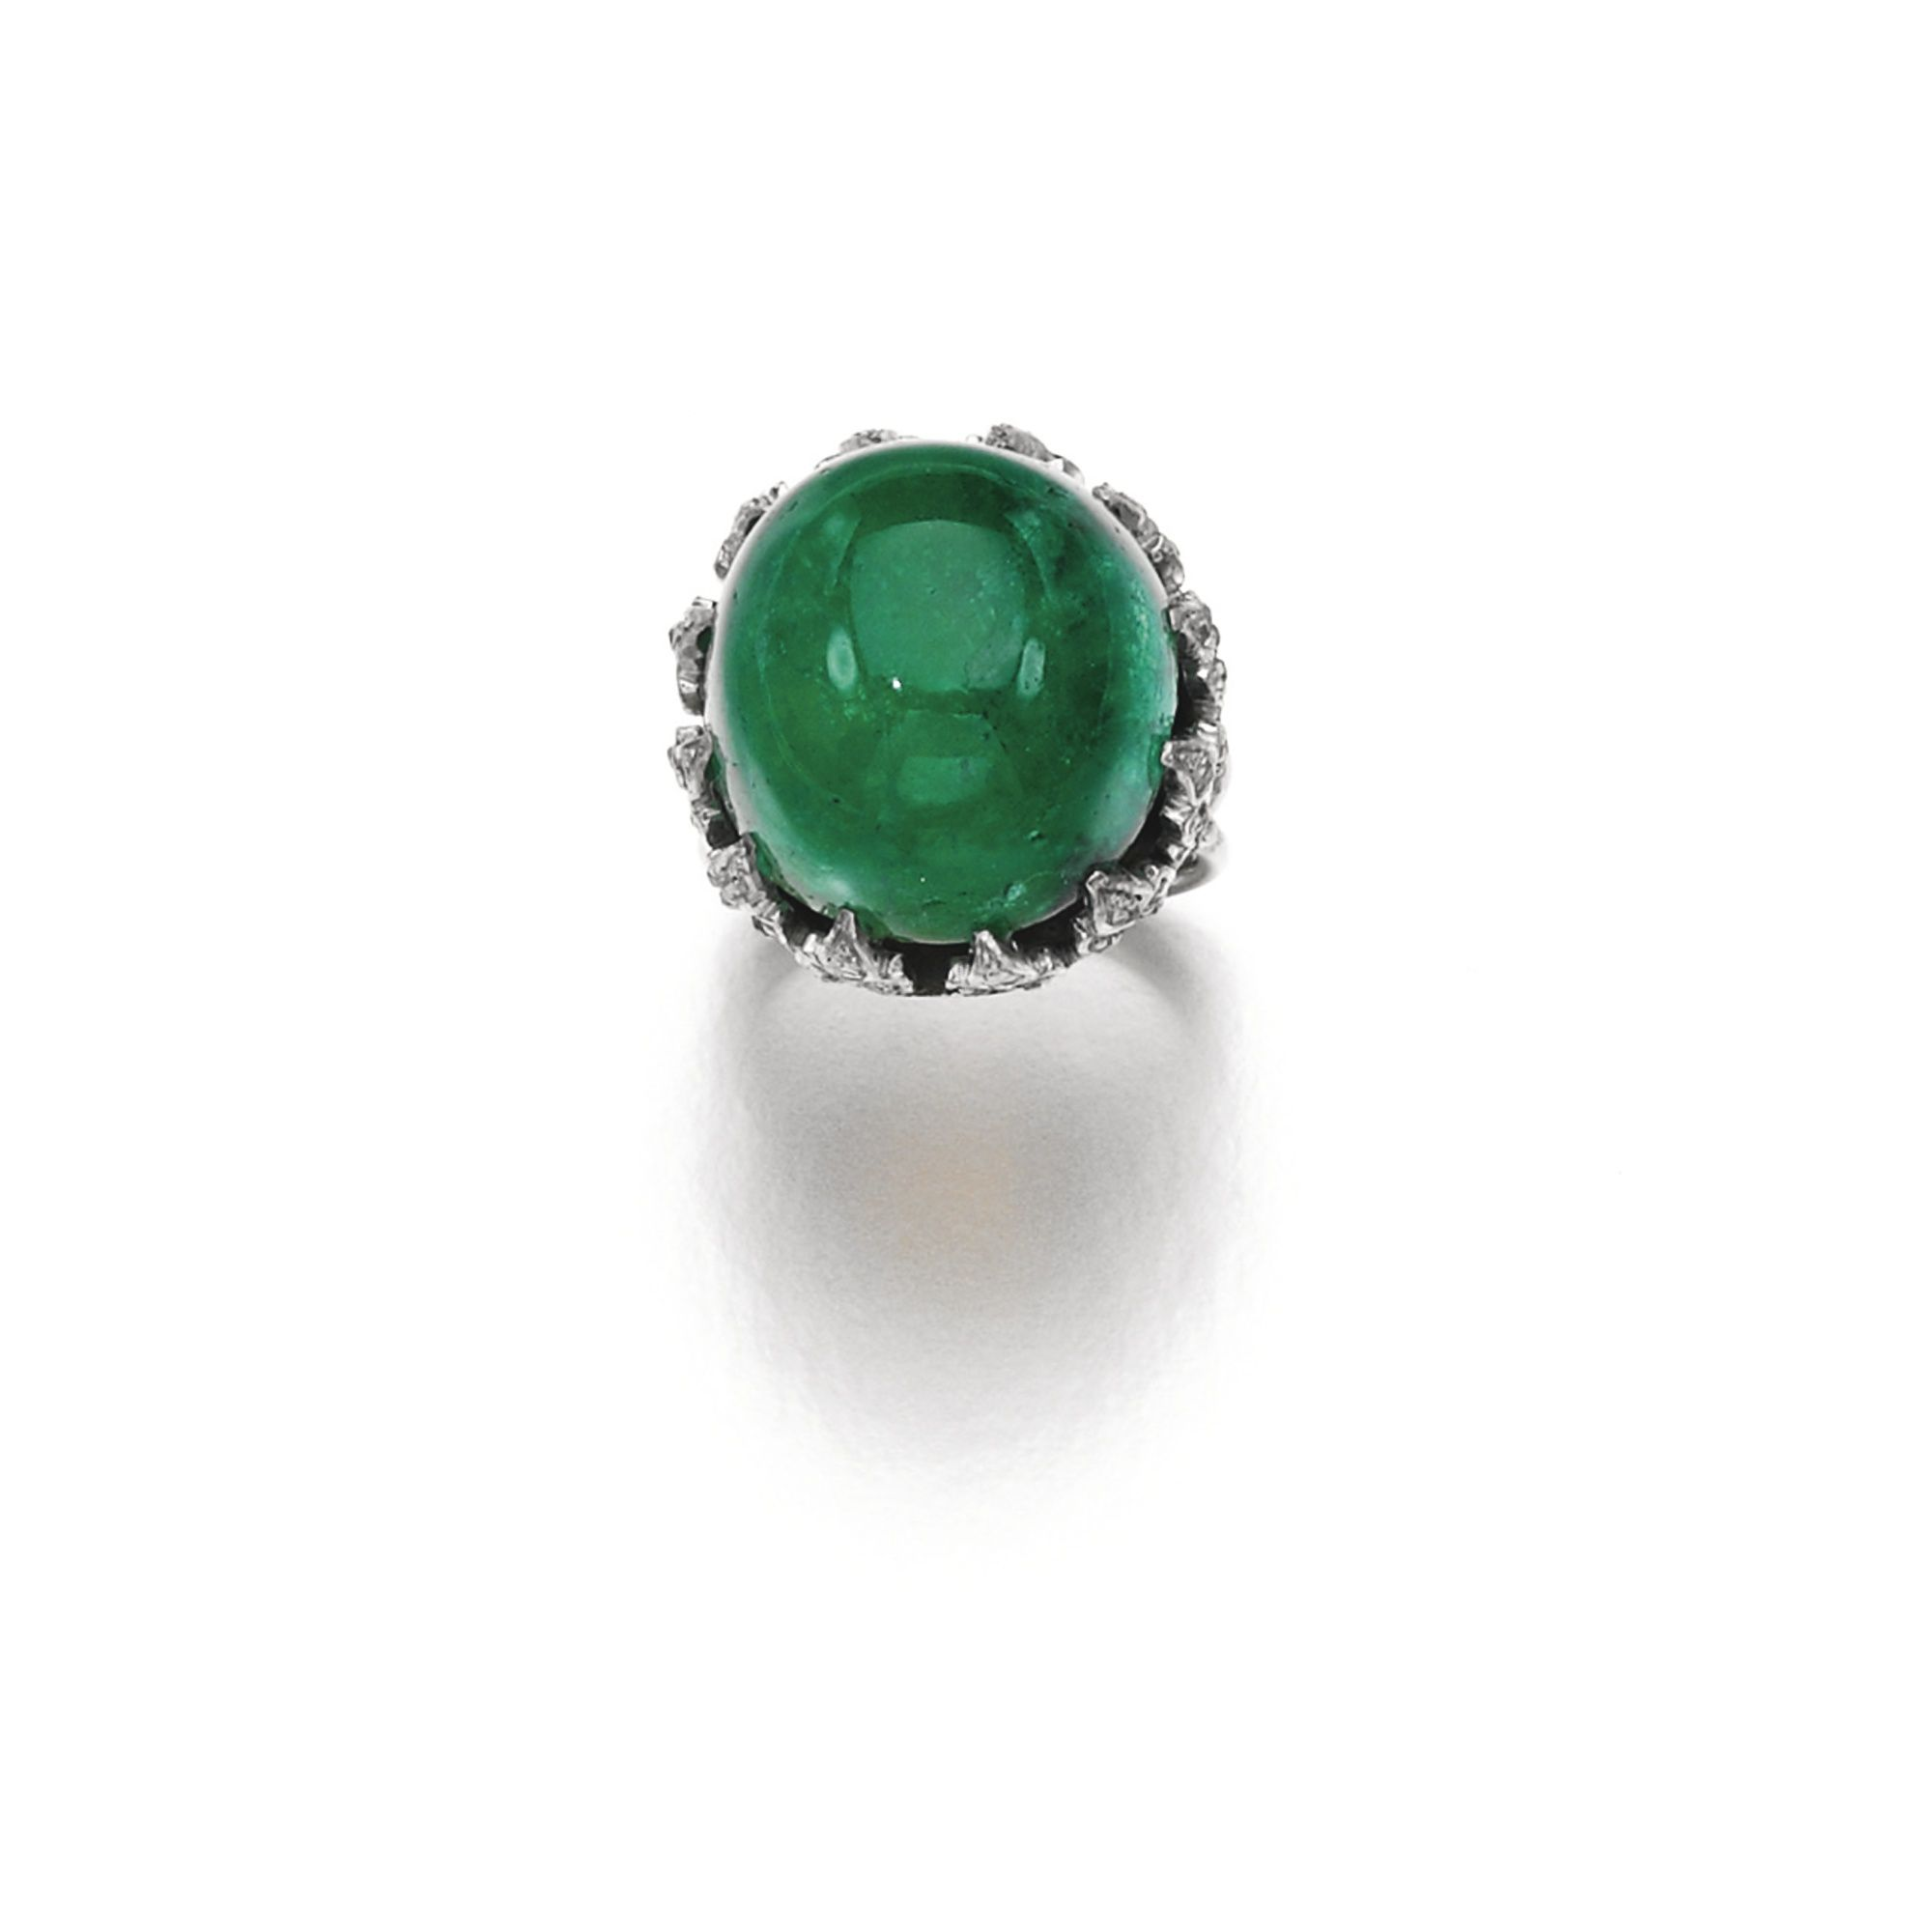 Emerald and diamond ring clawset with a cabochon emerald the